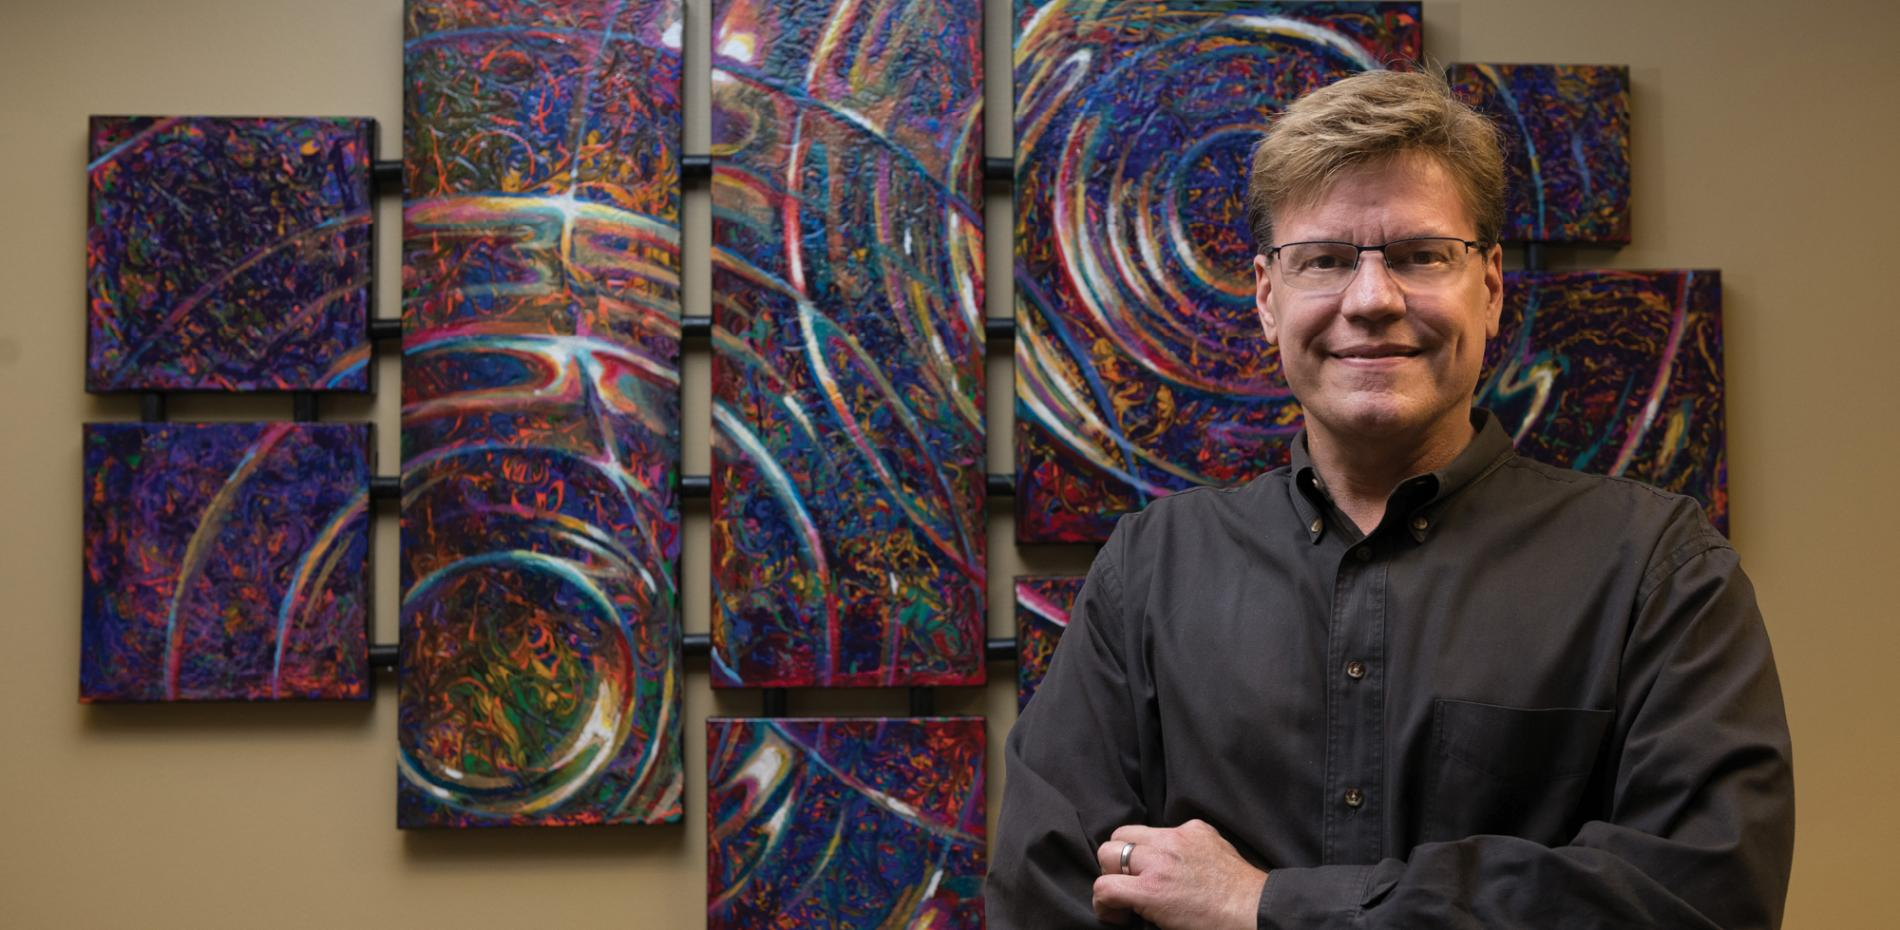 Bobby Strickland in front of painting